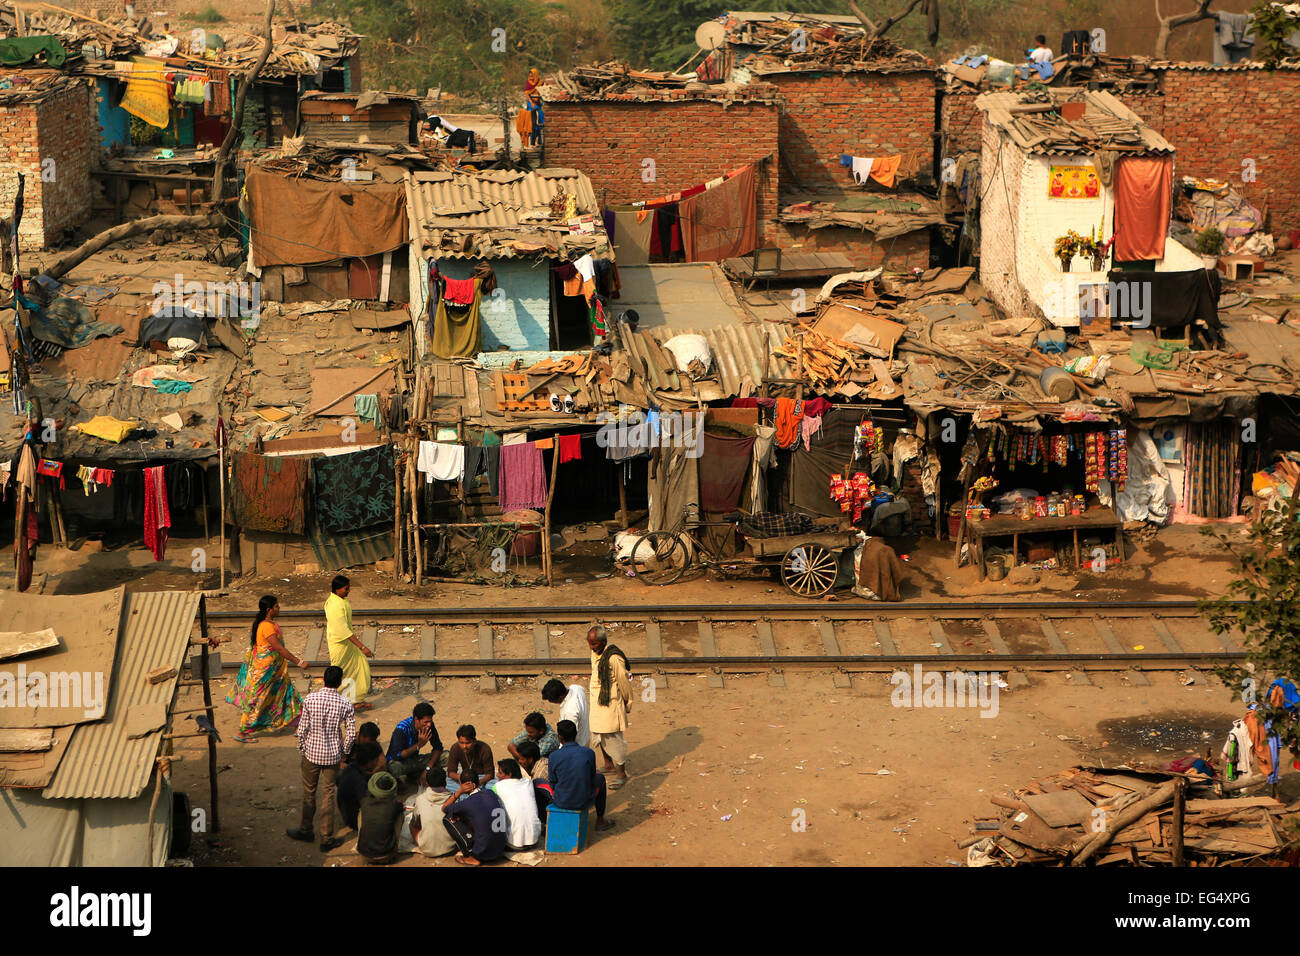 Ghetto and slums in Delhi India.These unidentified people live in  a very  difficult conditions - Stock Image